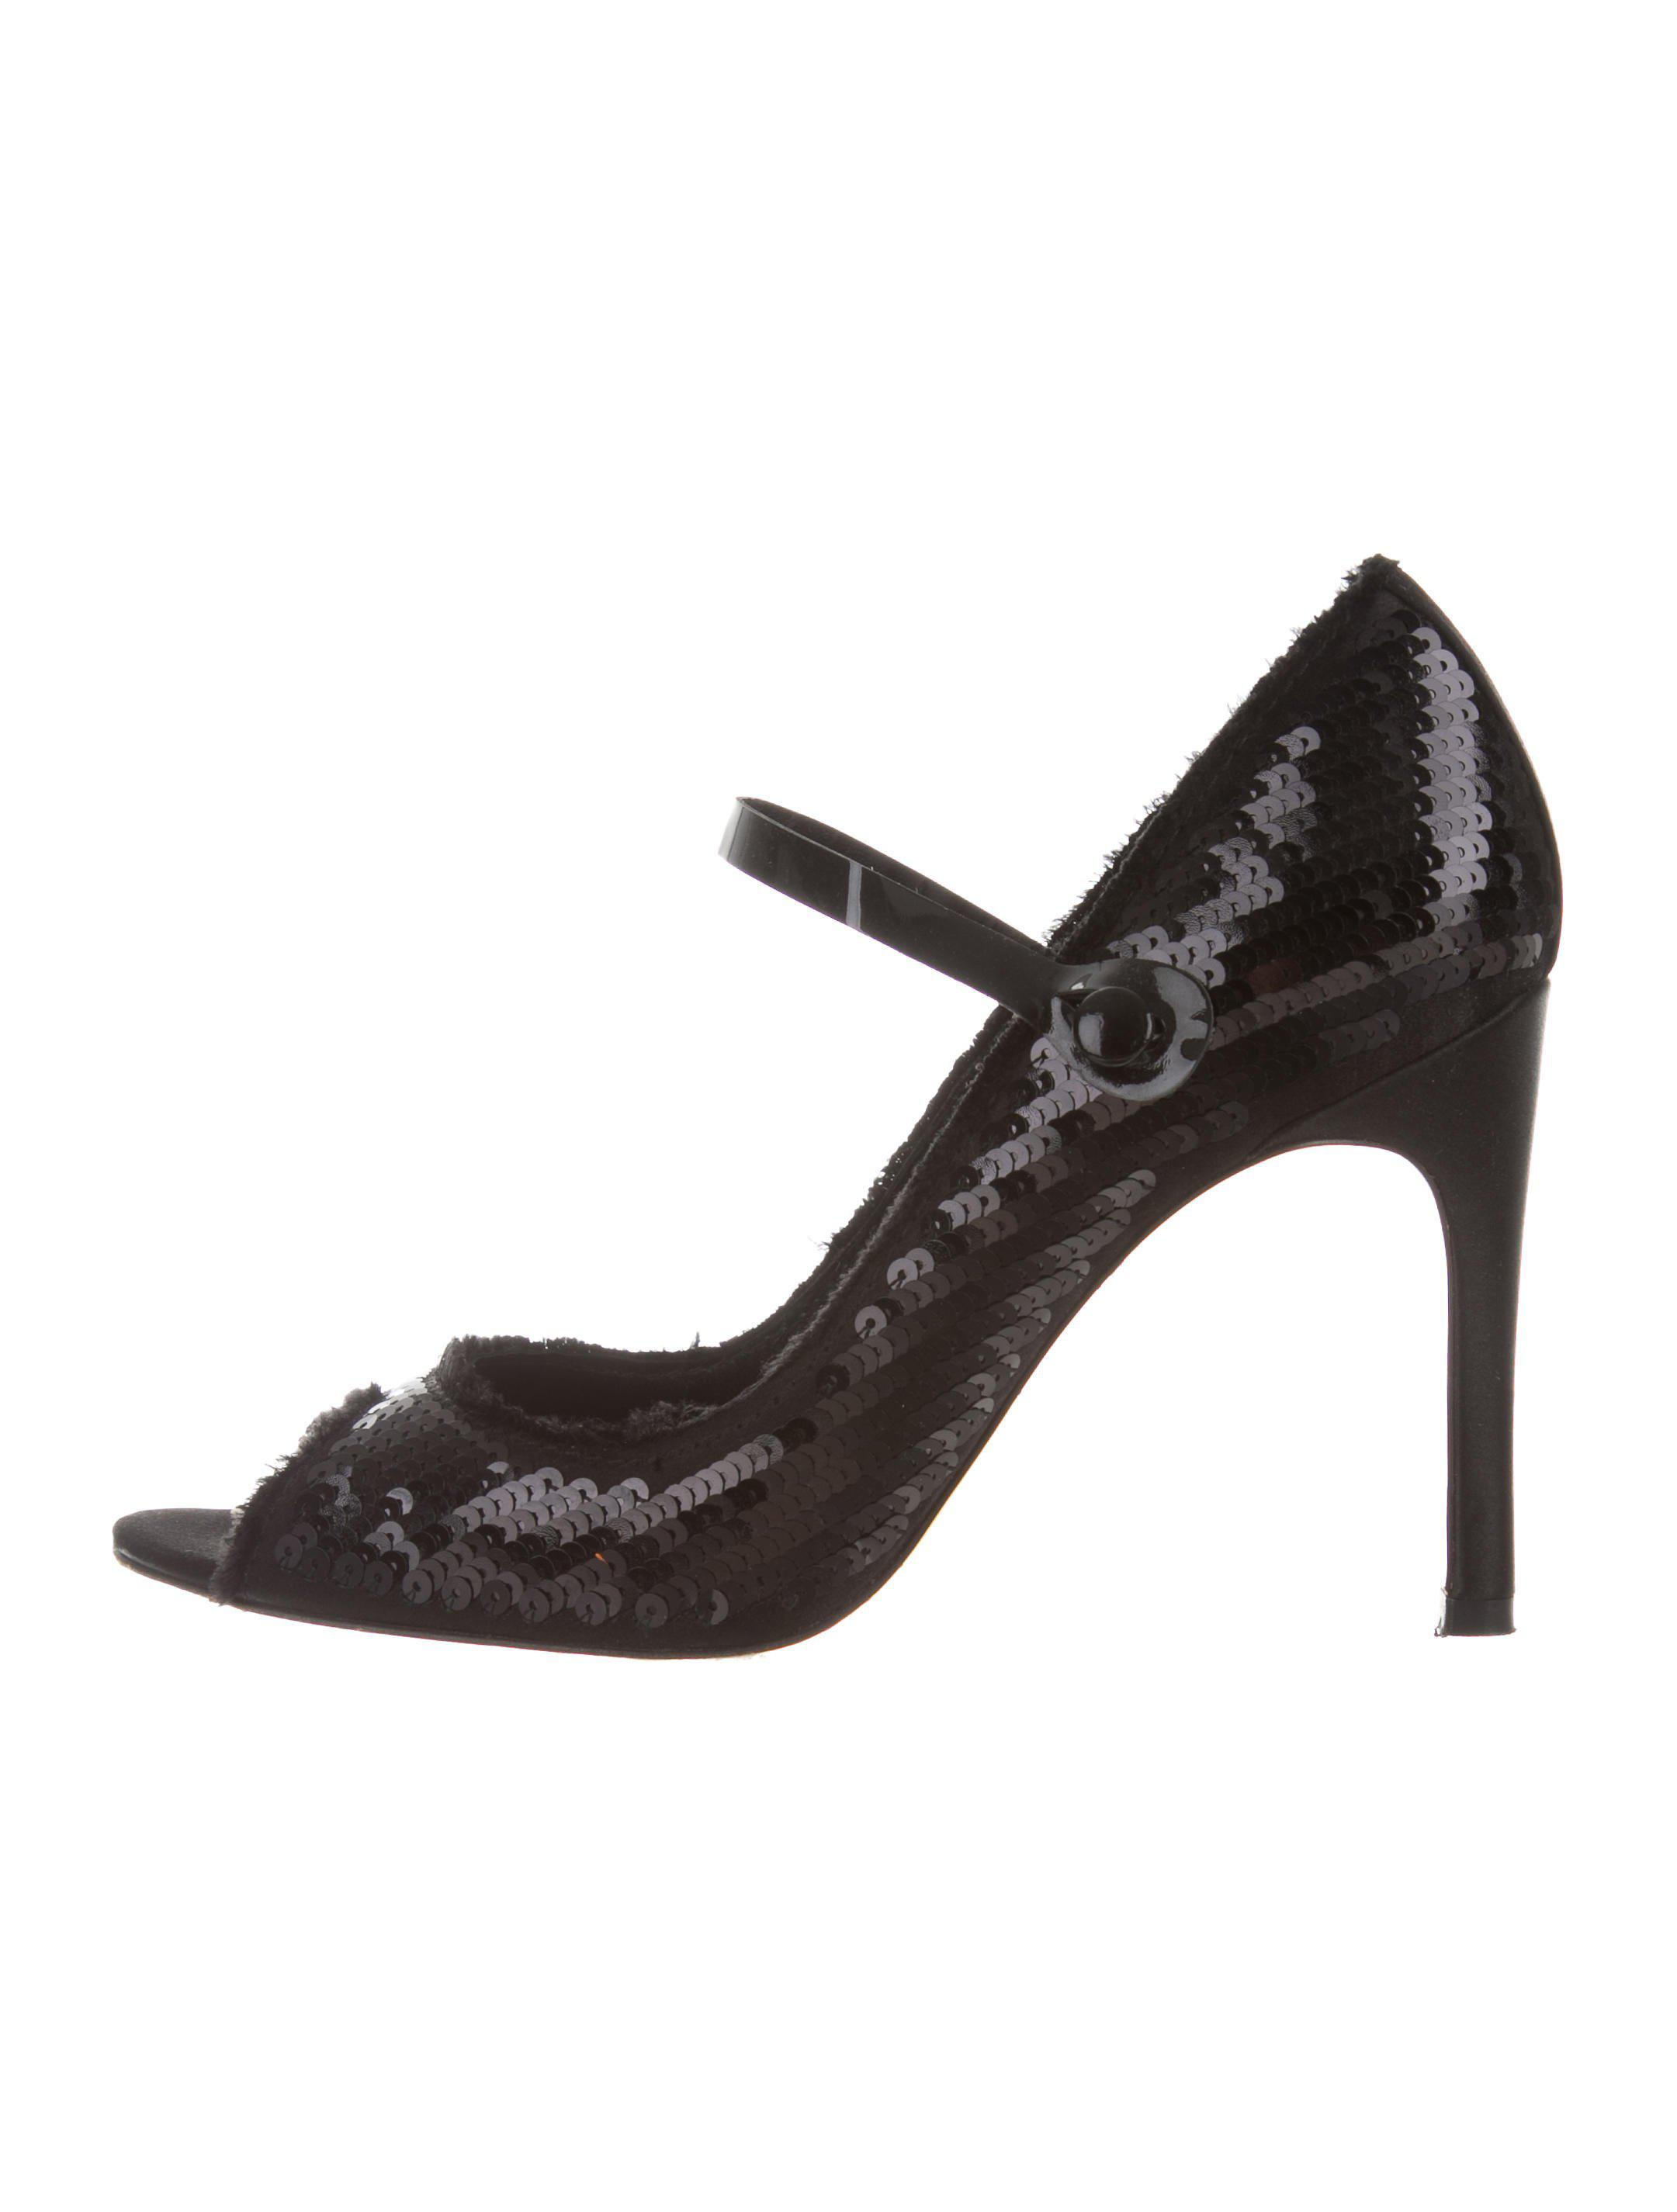 47f443b53a5 Lyst - Pedro Garcia Sequin-embellished Peep-toe Pumps in Black